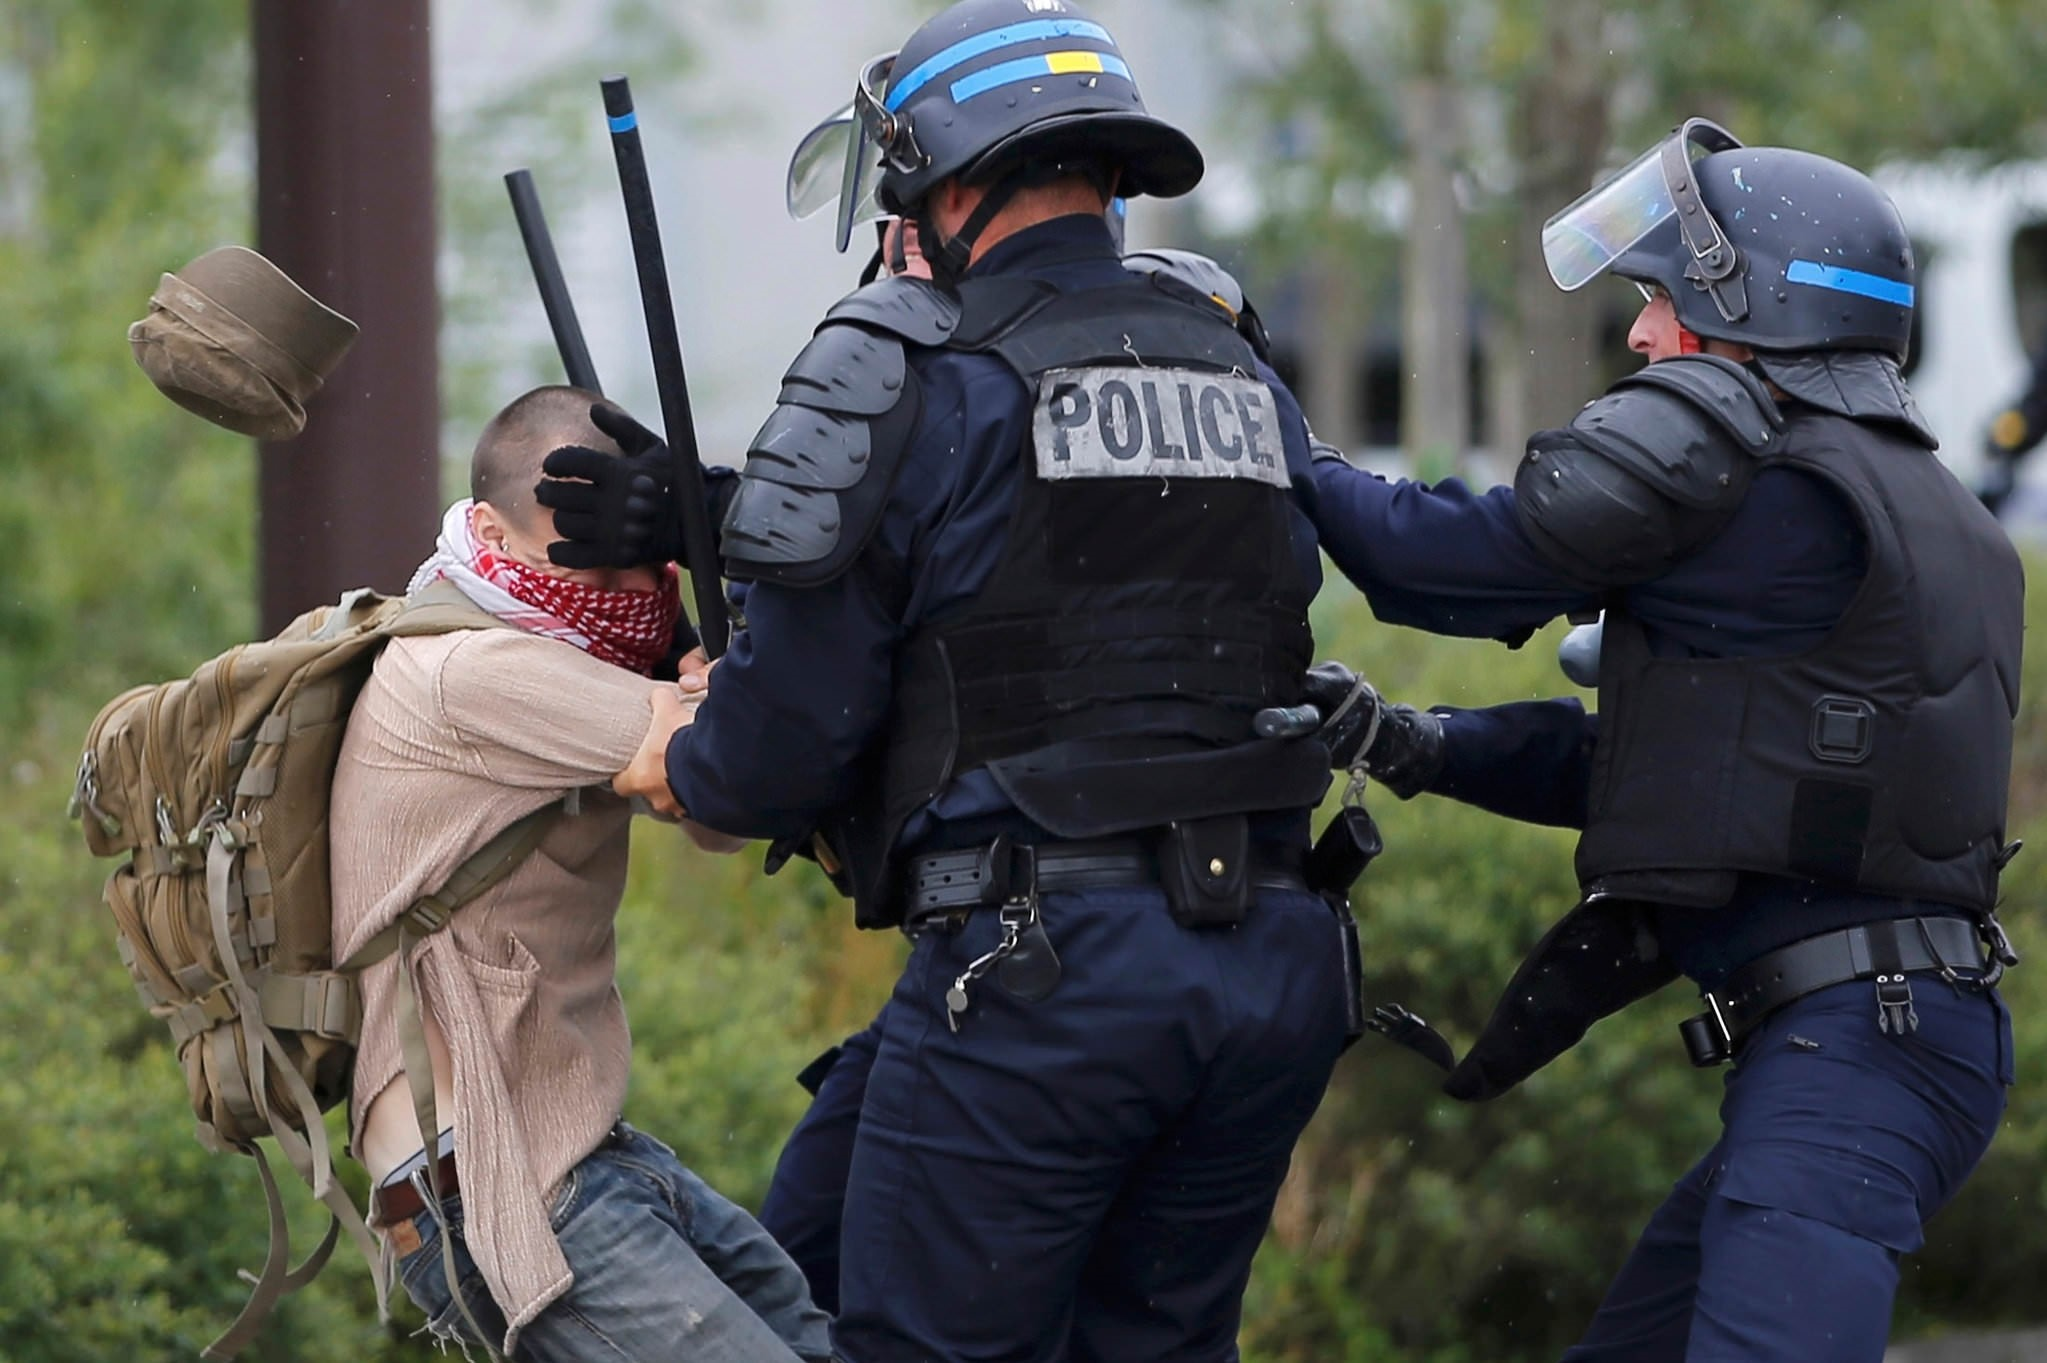 French police apprehend a man during a demonstration to protest the government's proposed labour law reforms in Nantes, France, May 26, 2016. (Reuters Photo)